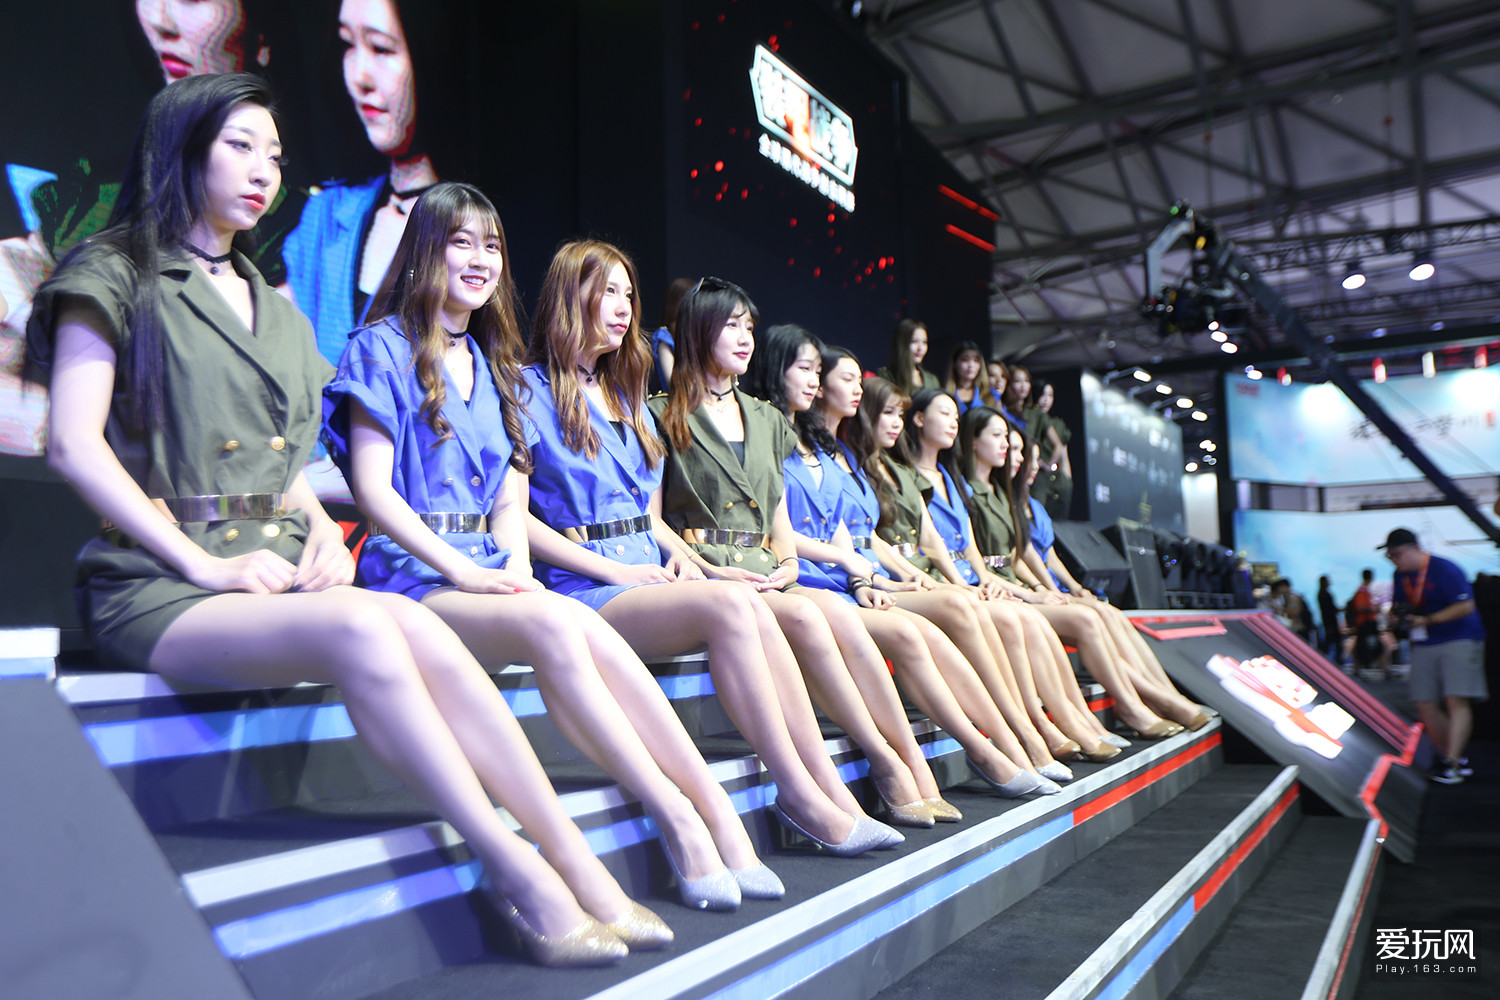 Chinese Girls at Chinajoy 2017 - Photo 1